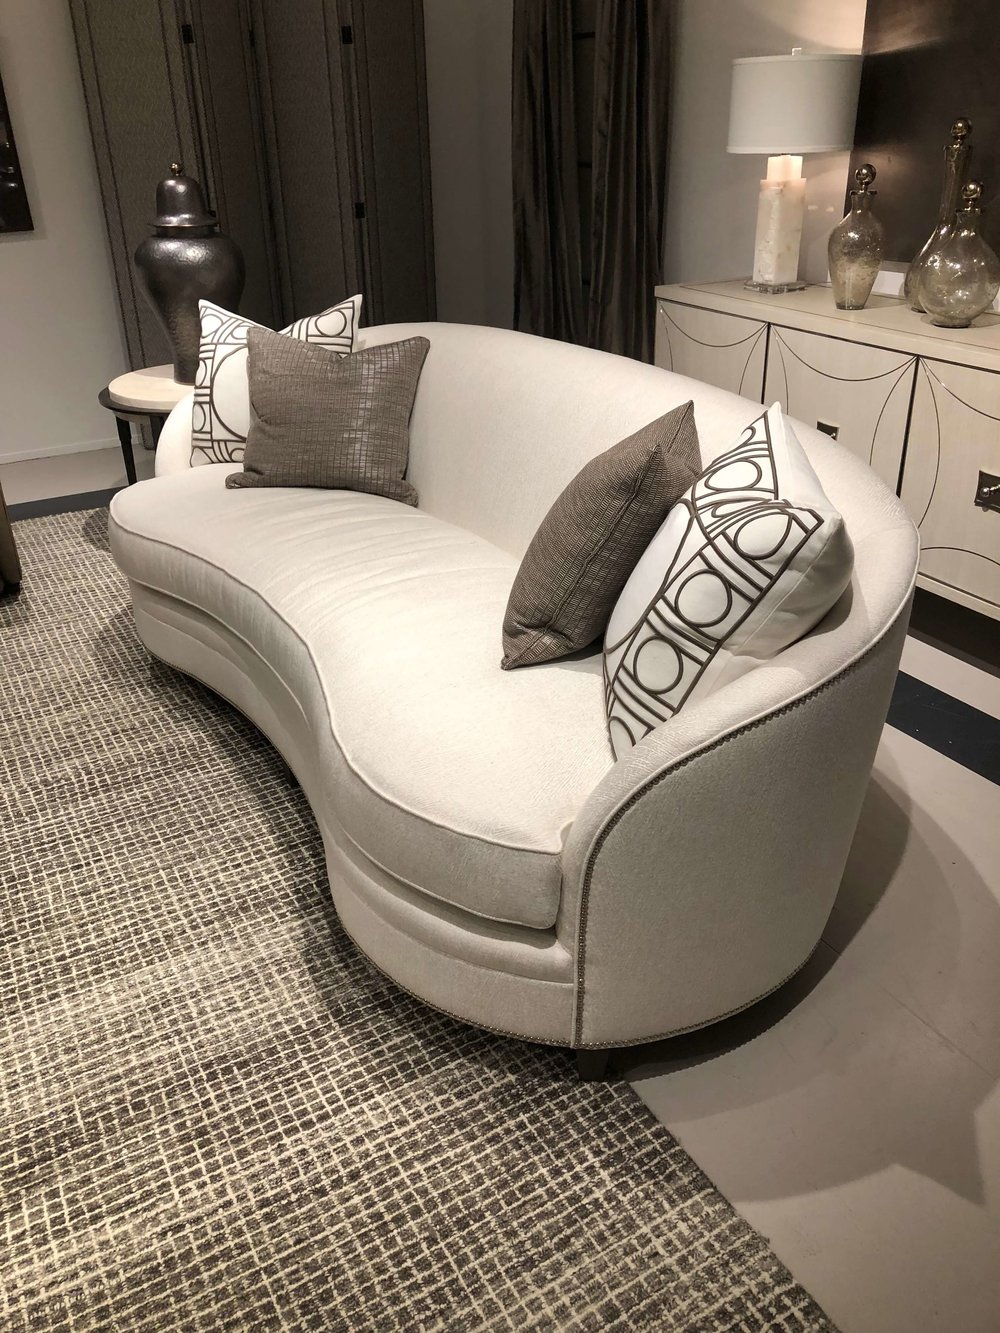 Pretty curvy sofa from Bernhardt at Highpoint Market